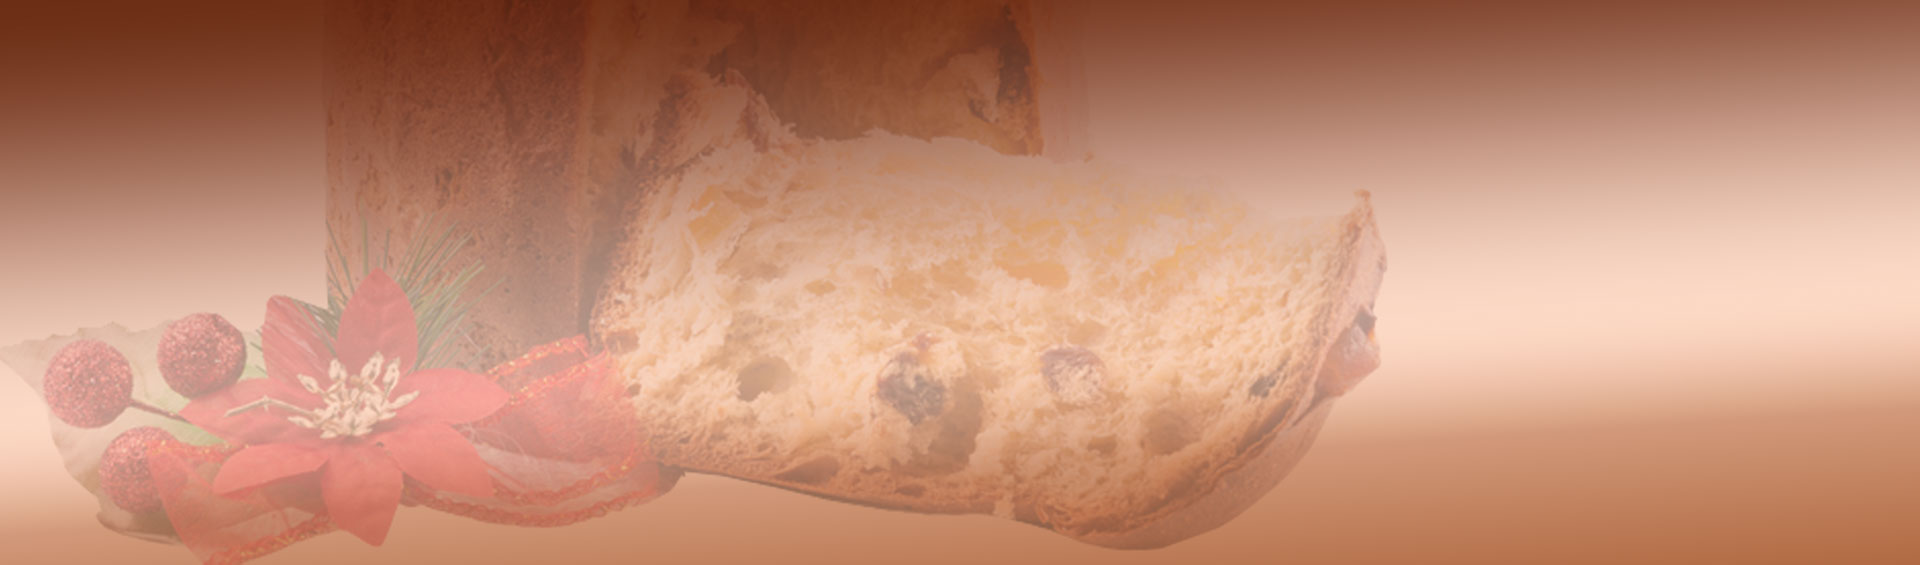 Panettone Background